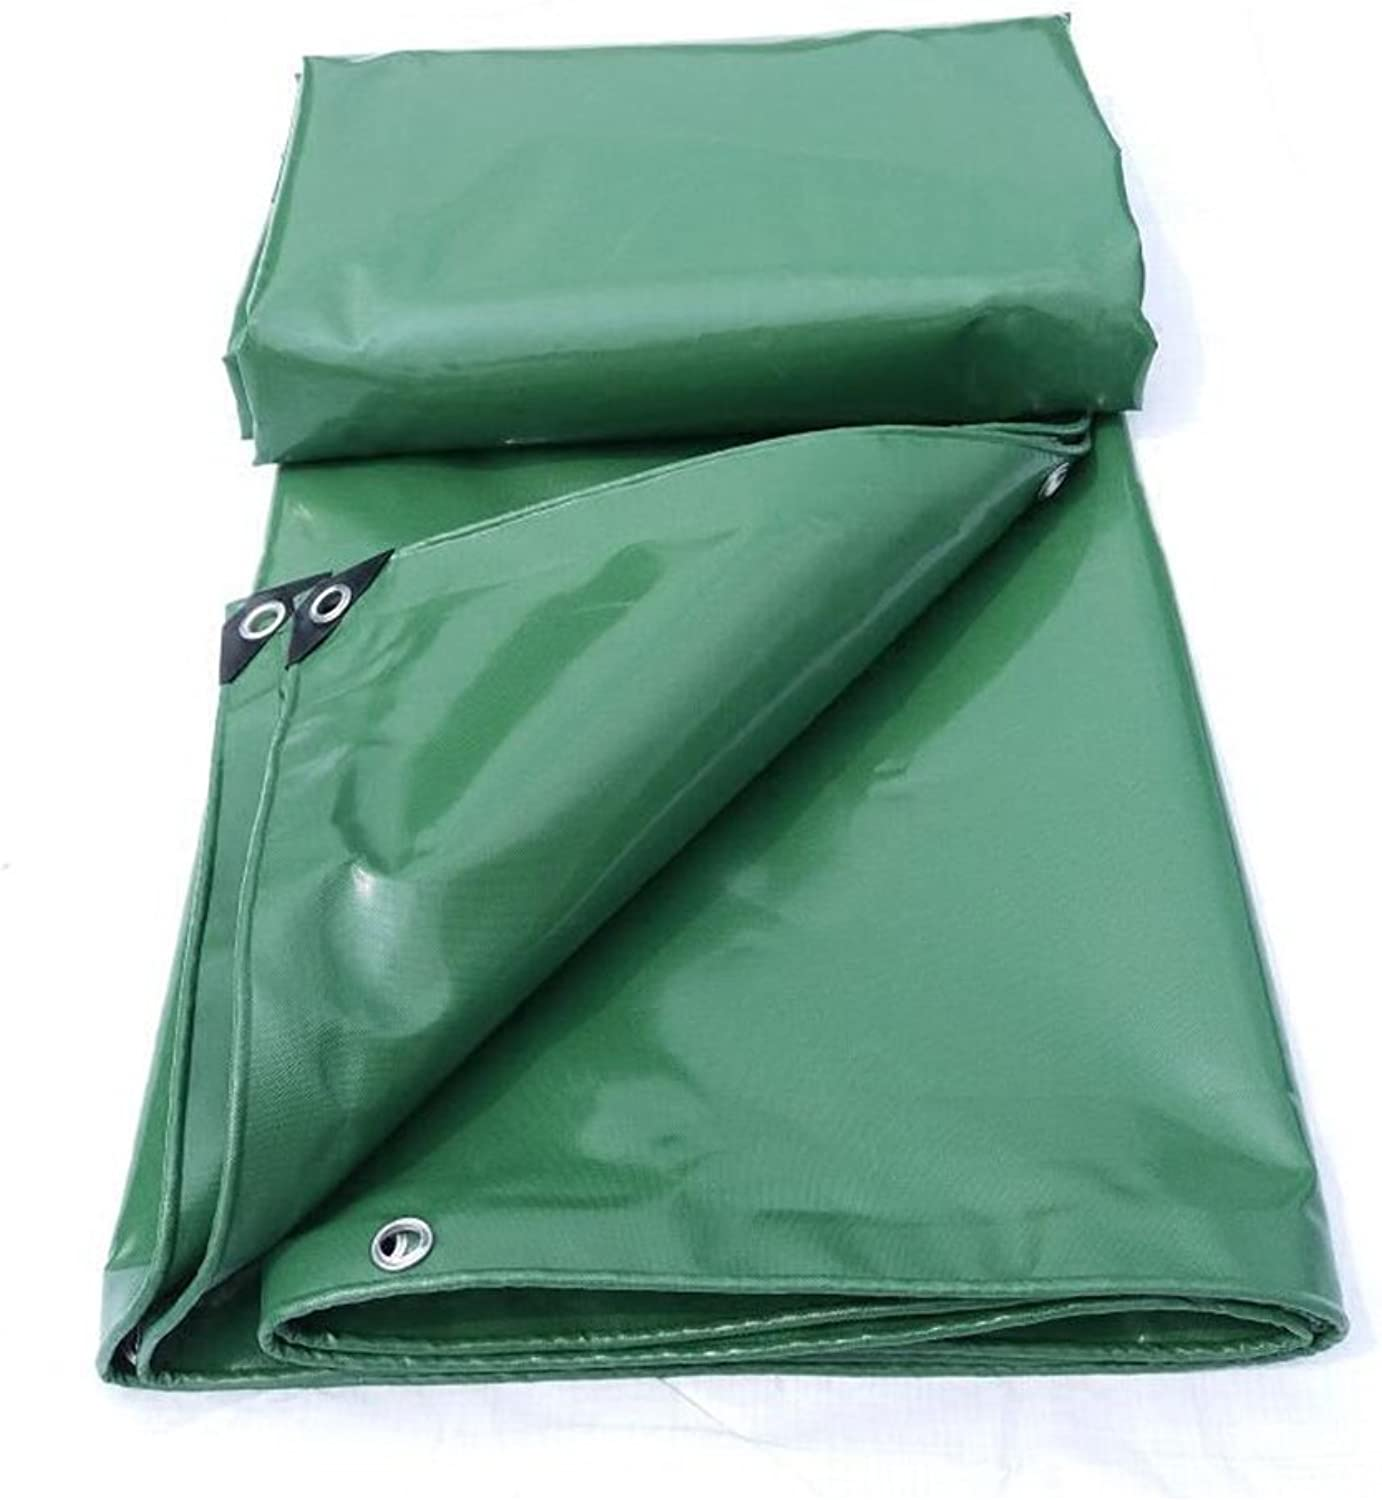 Waterproof Fireproof Sunscreen Durable PVC Knife Cloth Truck Tarpaulin Green 0.45mm Outdoor Shade cloth 520g square Meter (color   Green, Size   34m)